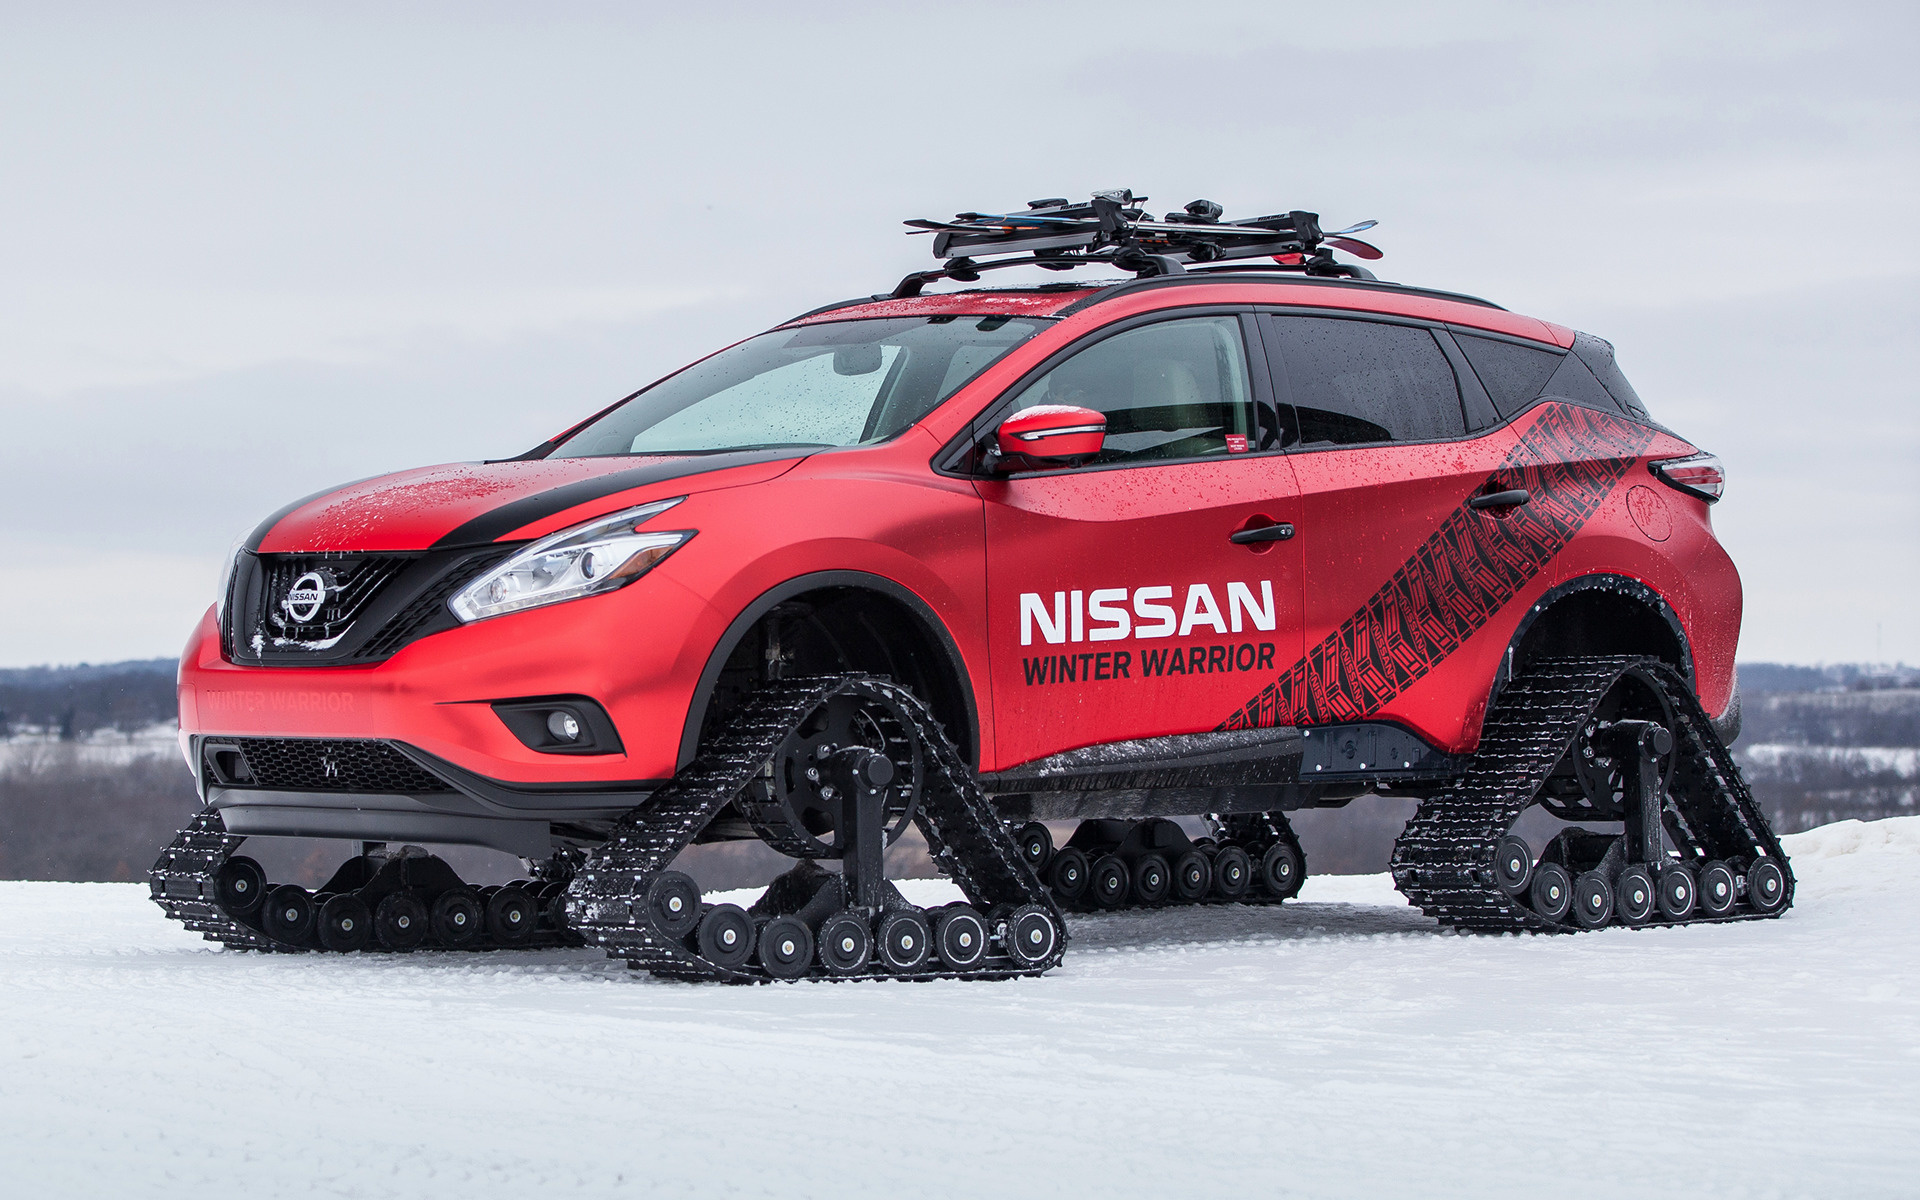 1920x1200 - Nissan Concept Wallpapers 18